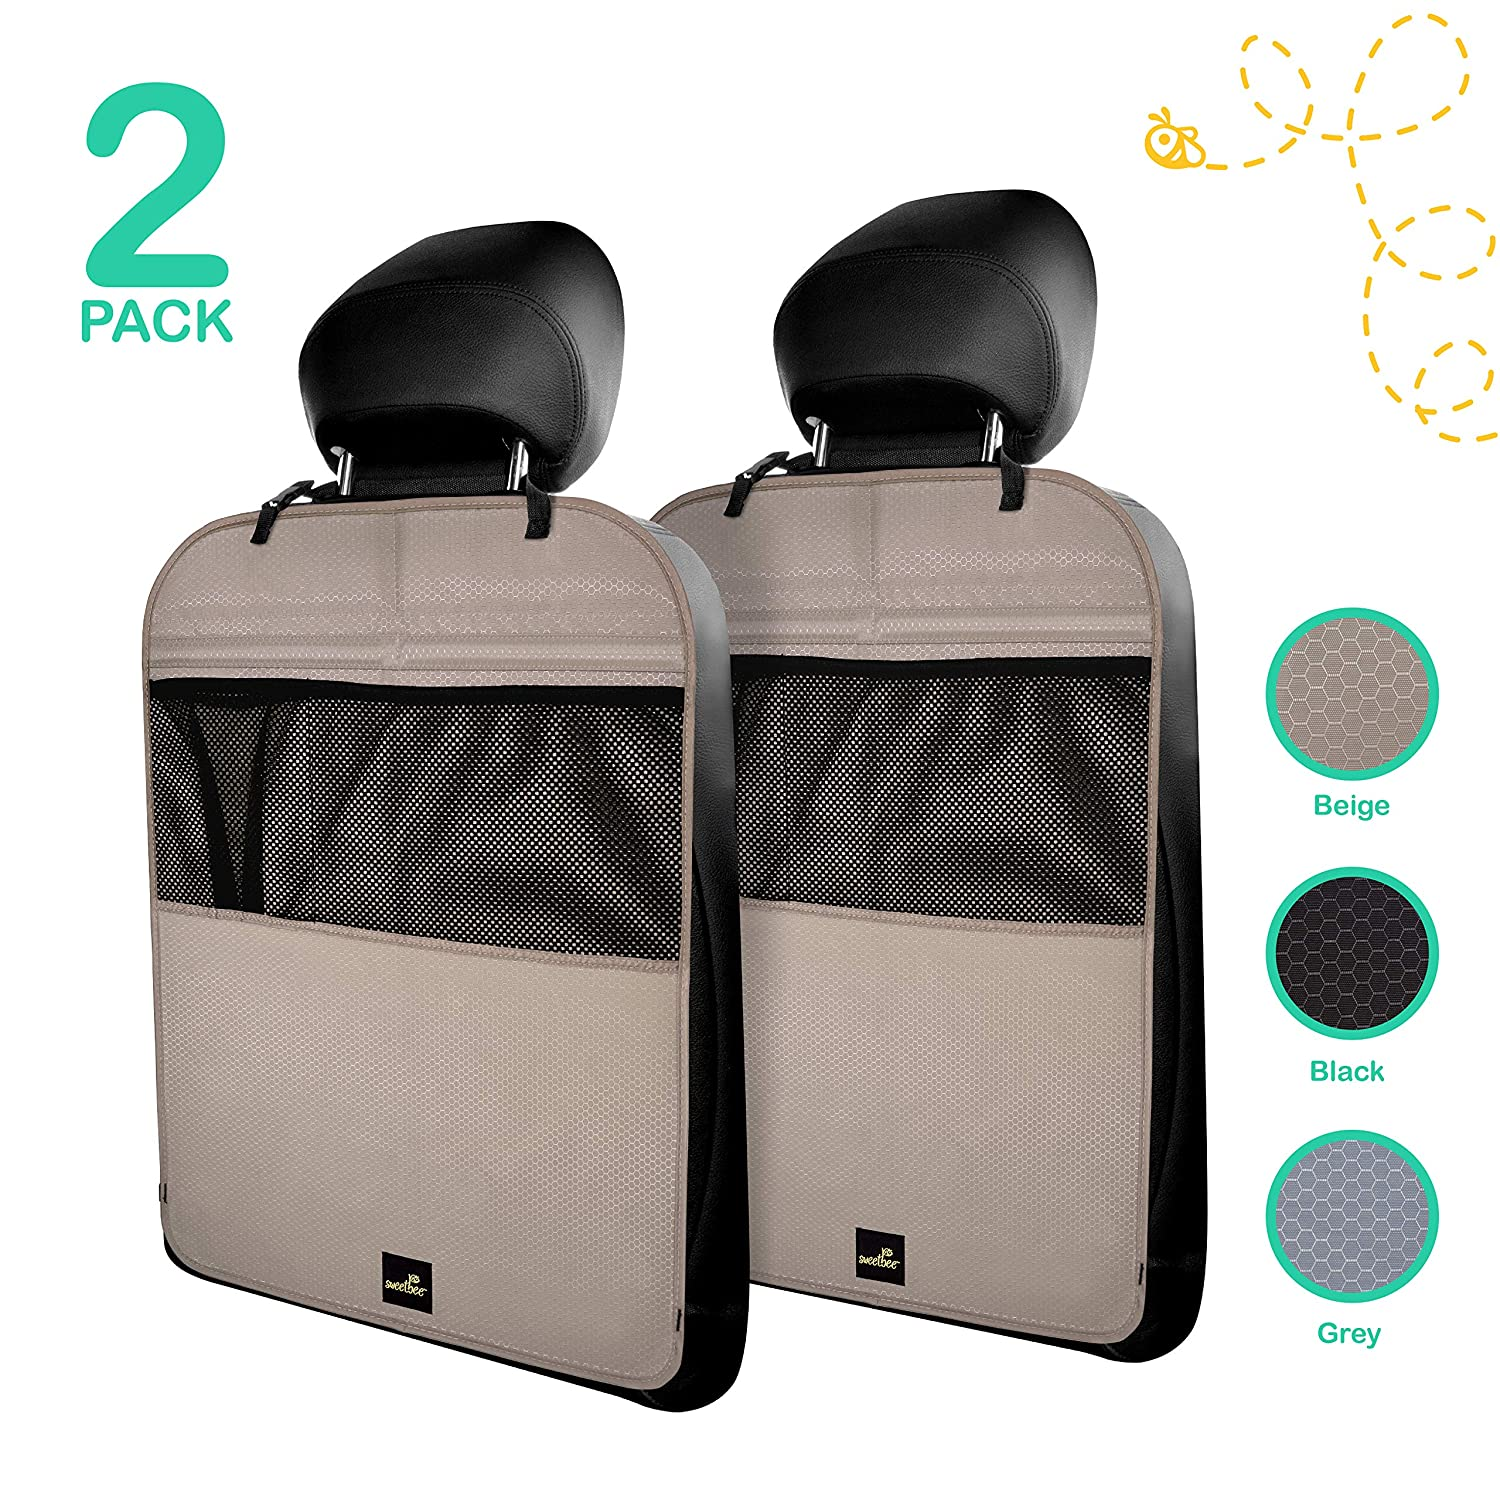 Premium & Stylish Car Seat Protector Kick Mats, 2 Pack, Easy Care, 3 Color Options sweetbee